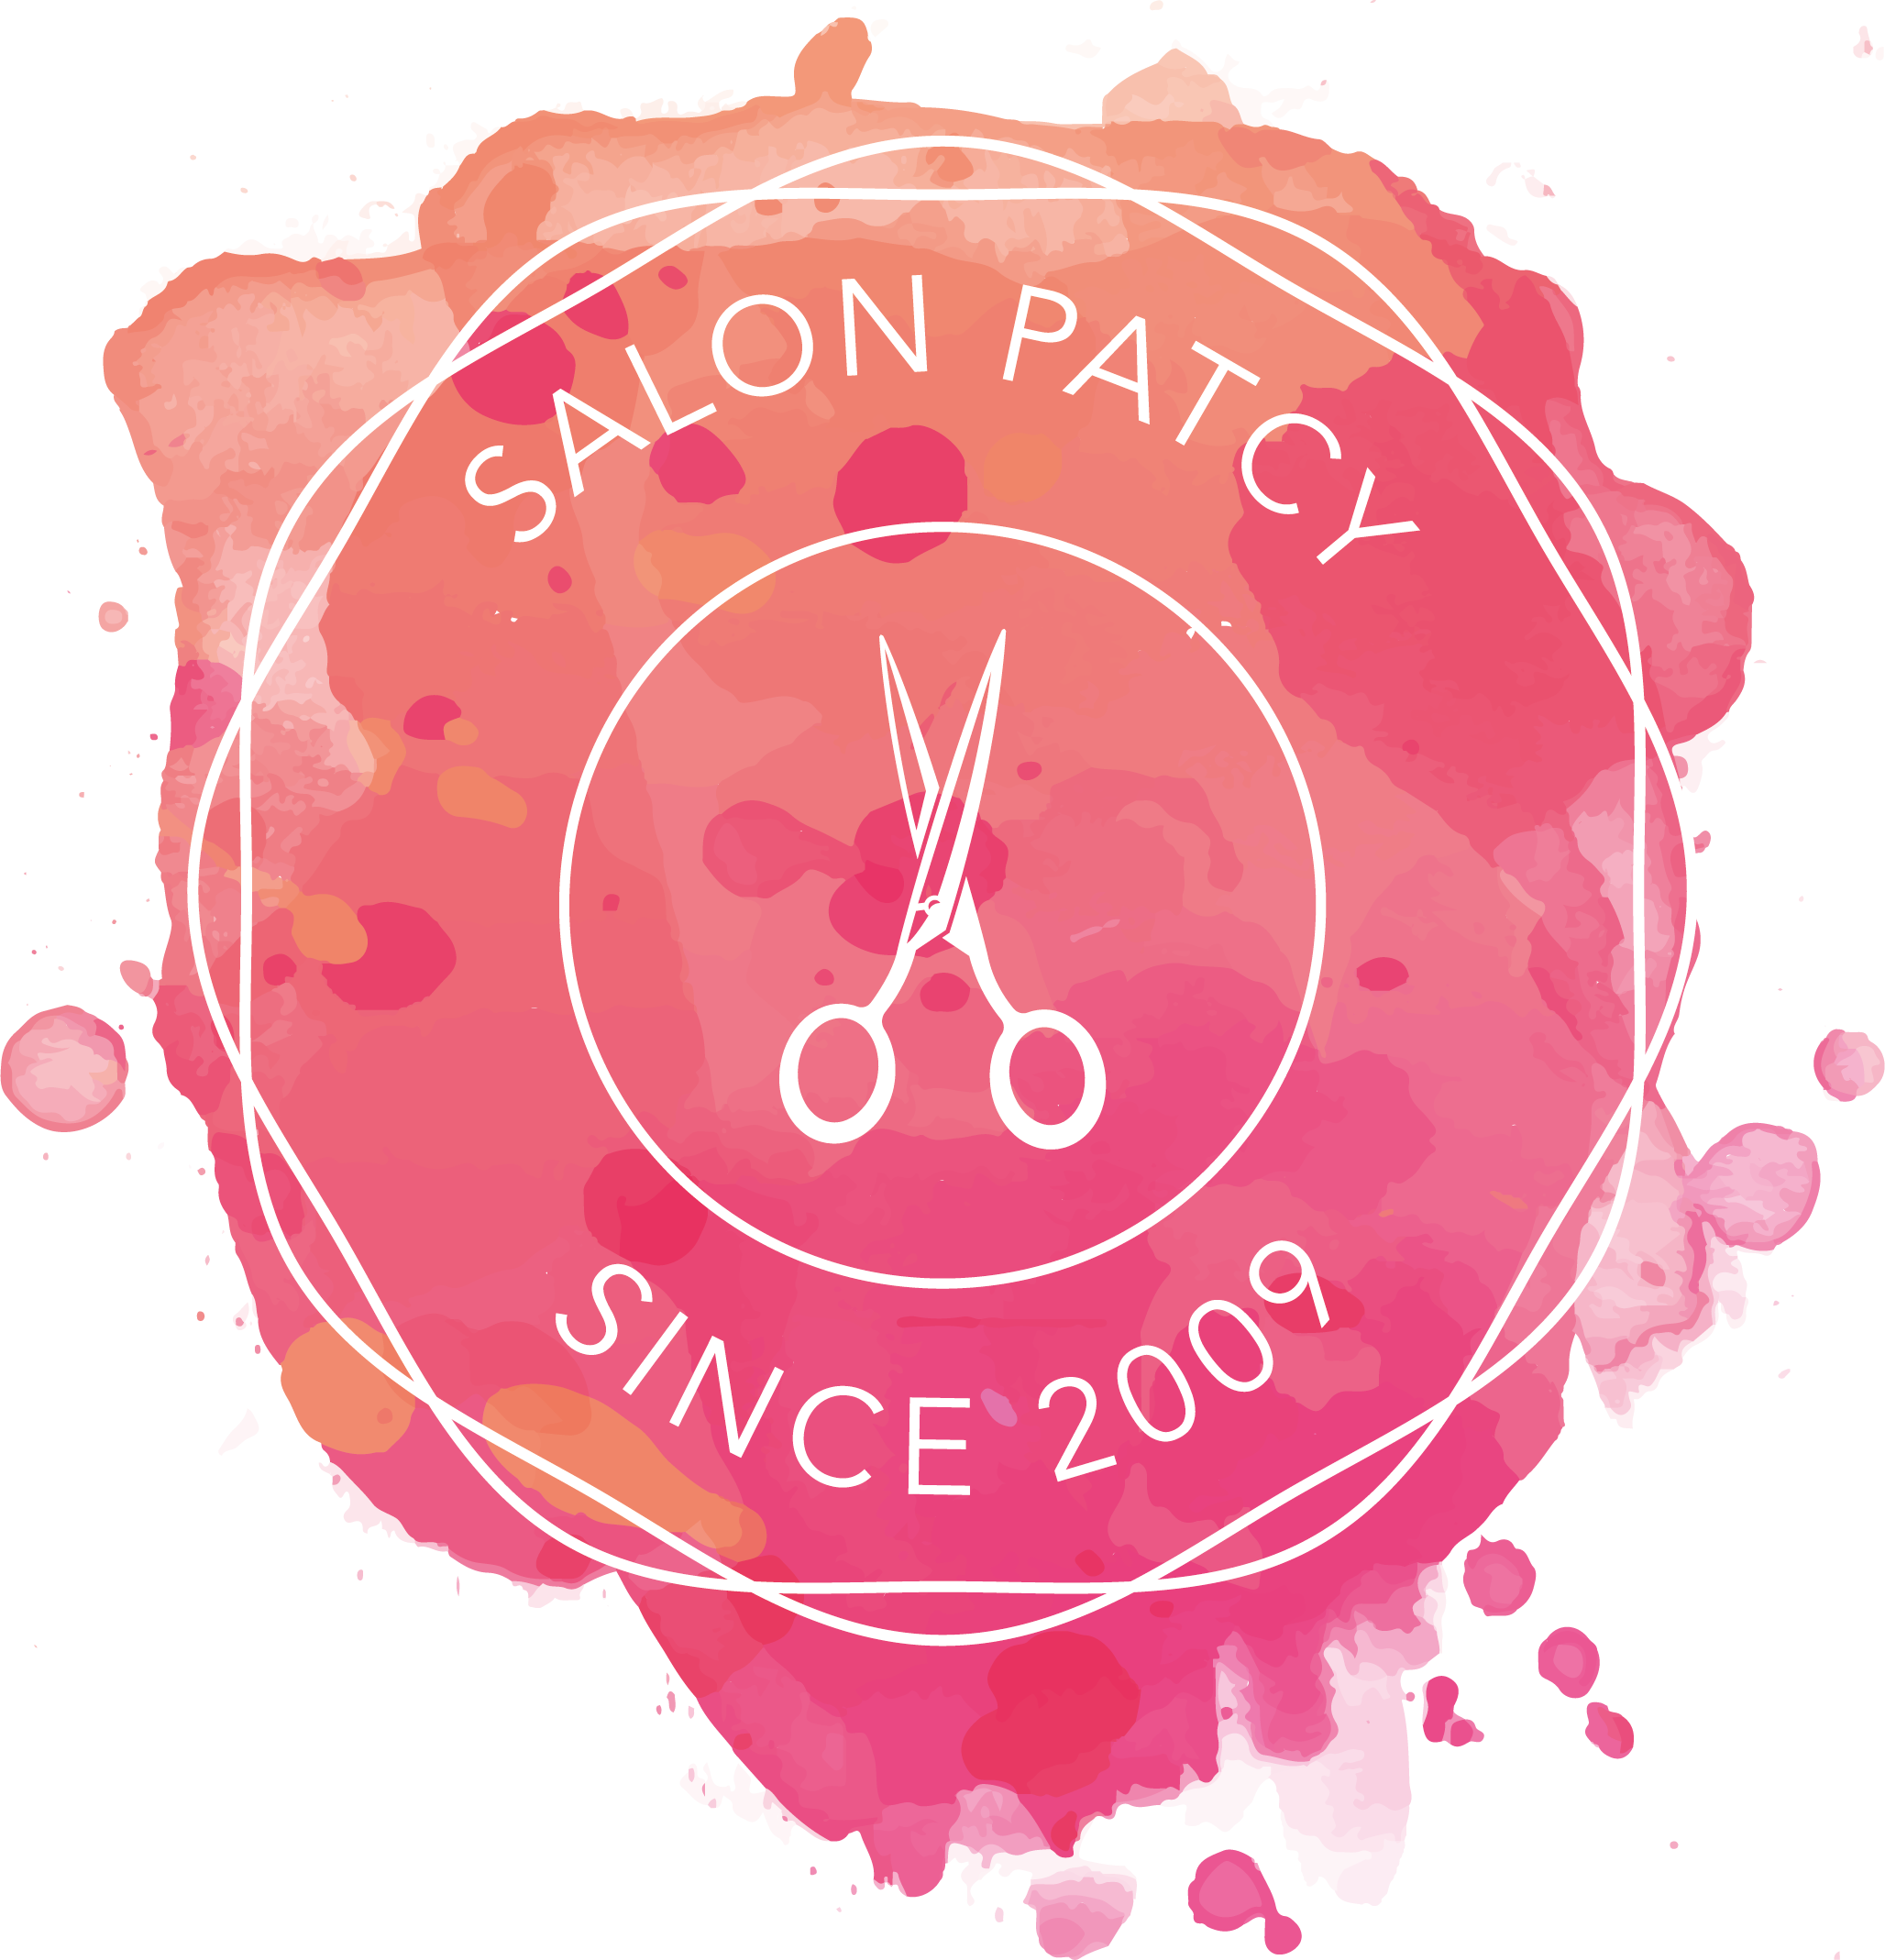 Salon Patcy